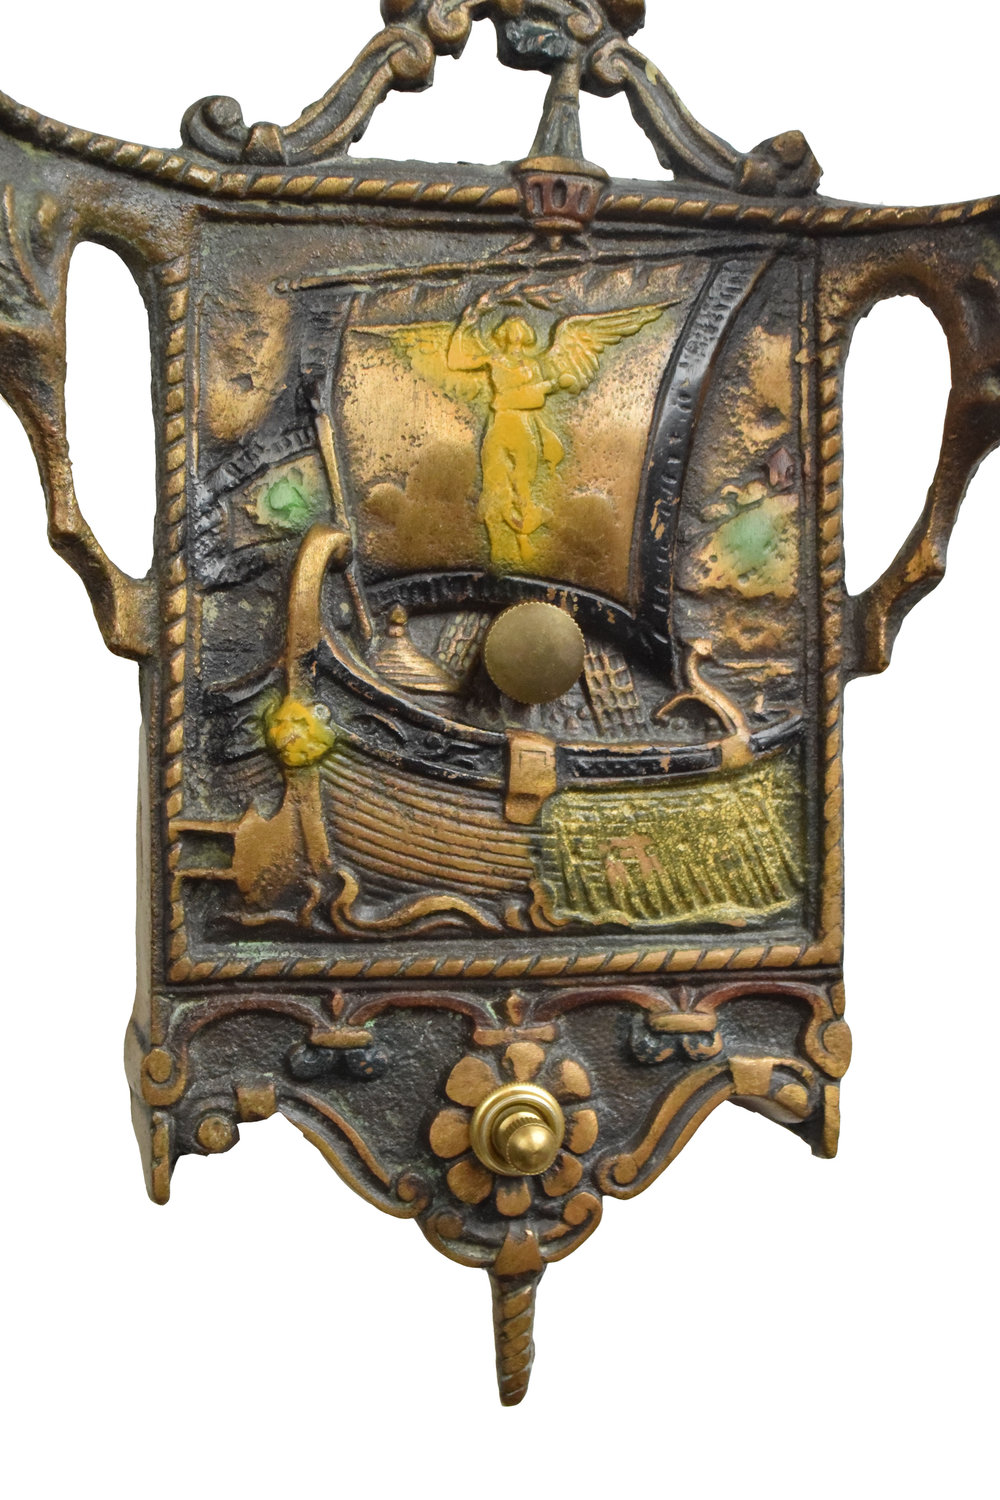 46971-cast-bronze-ship-sconce-center.jpg